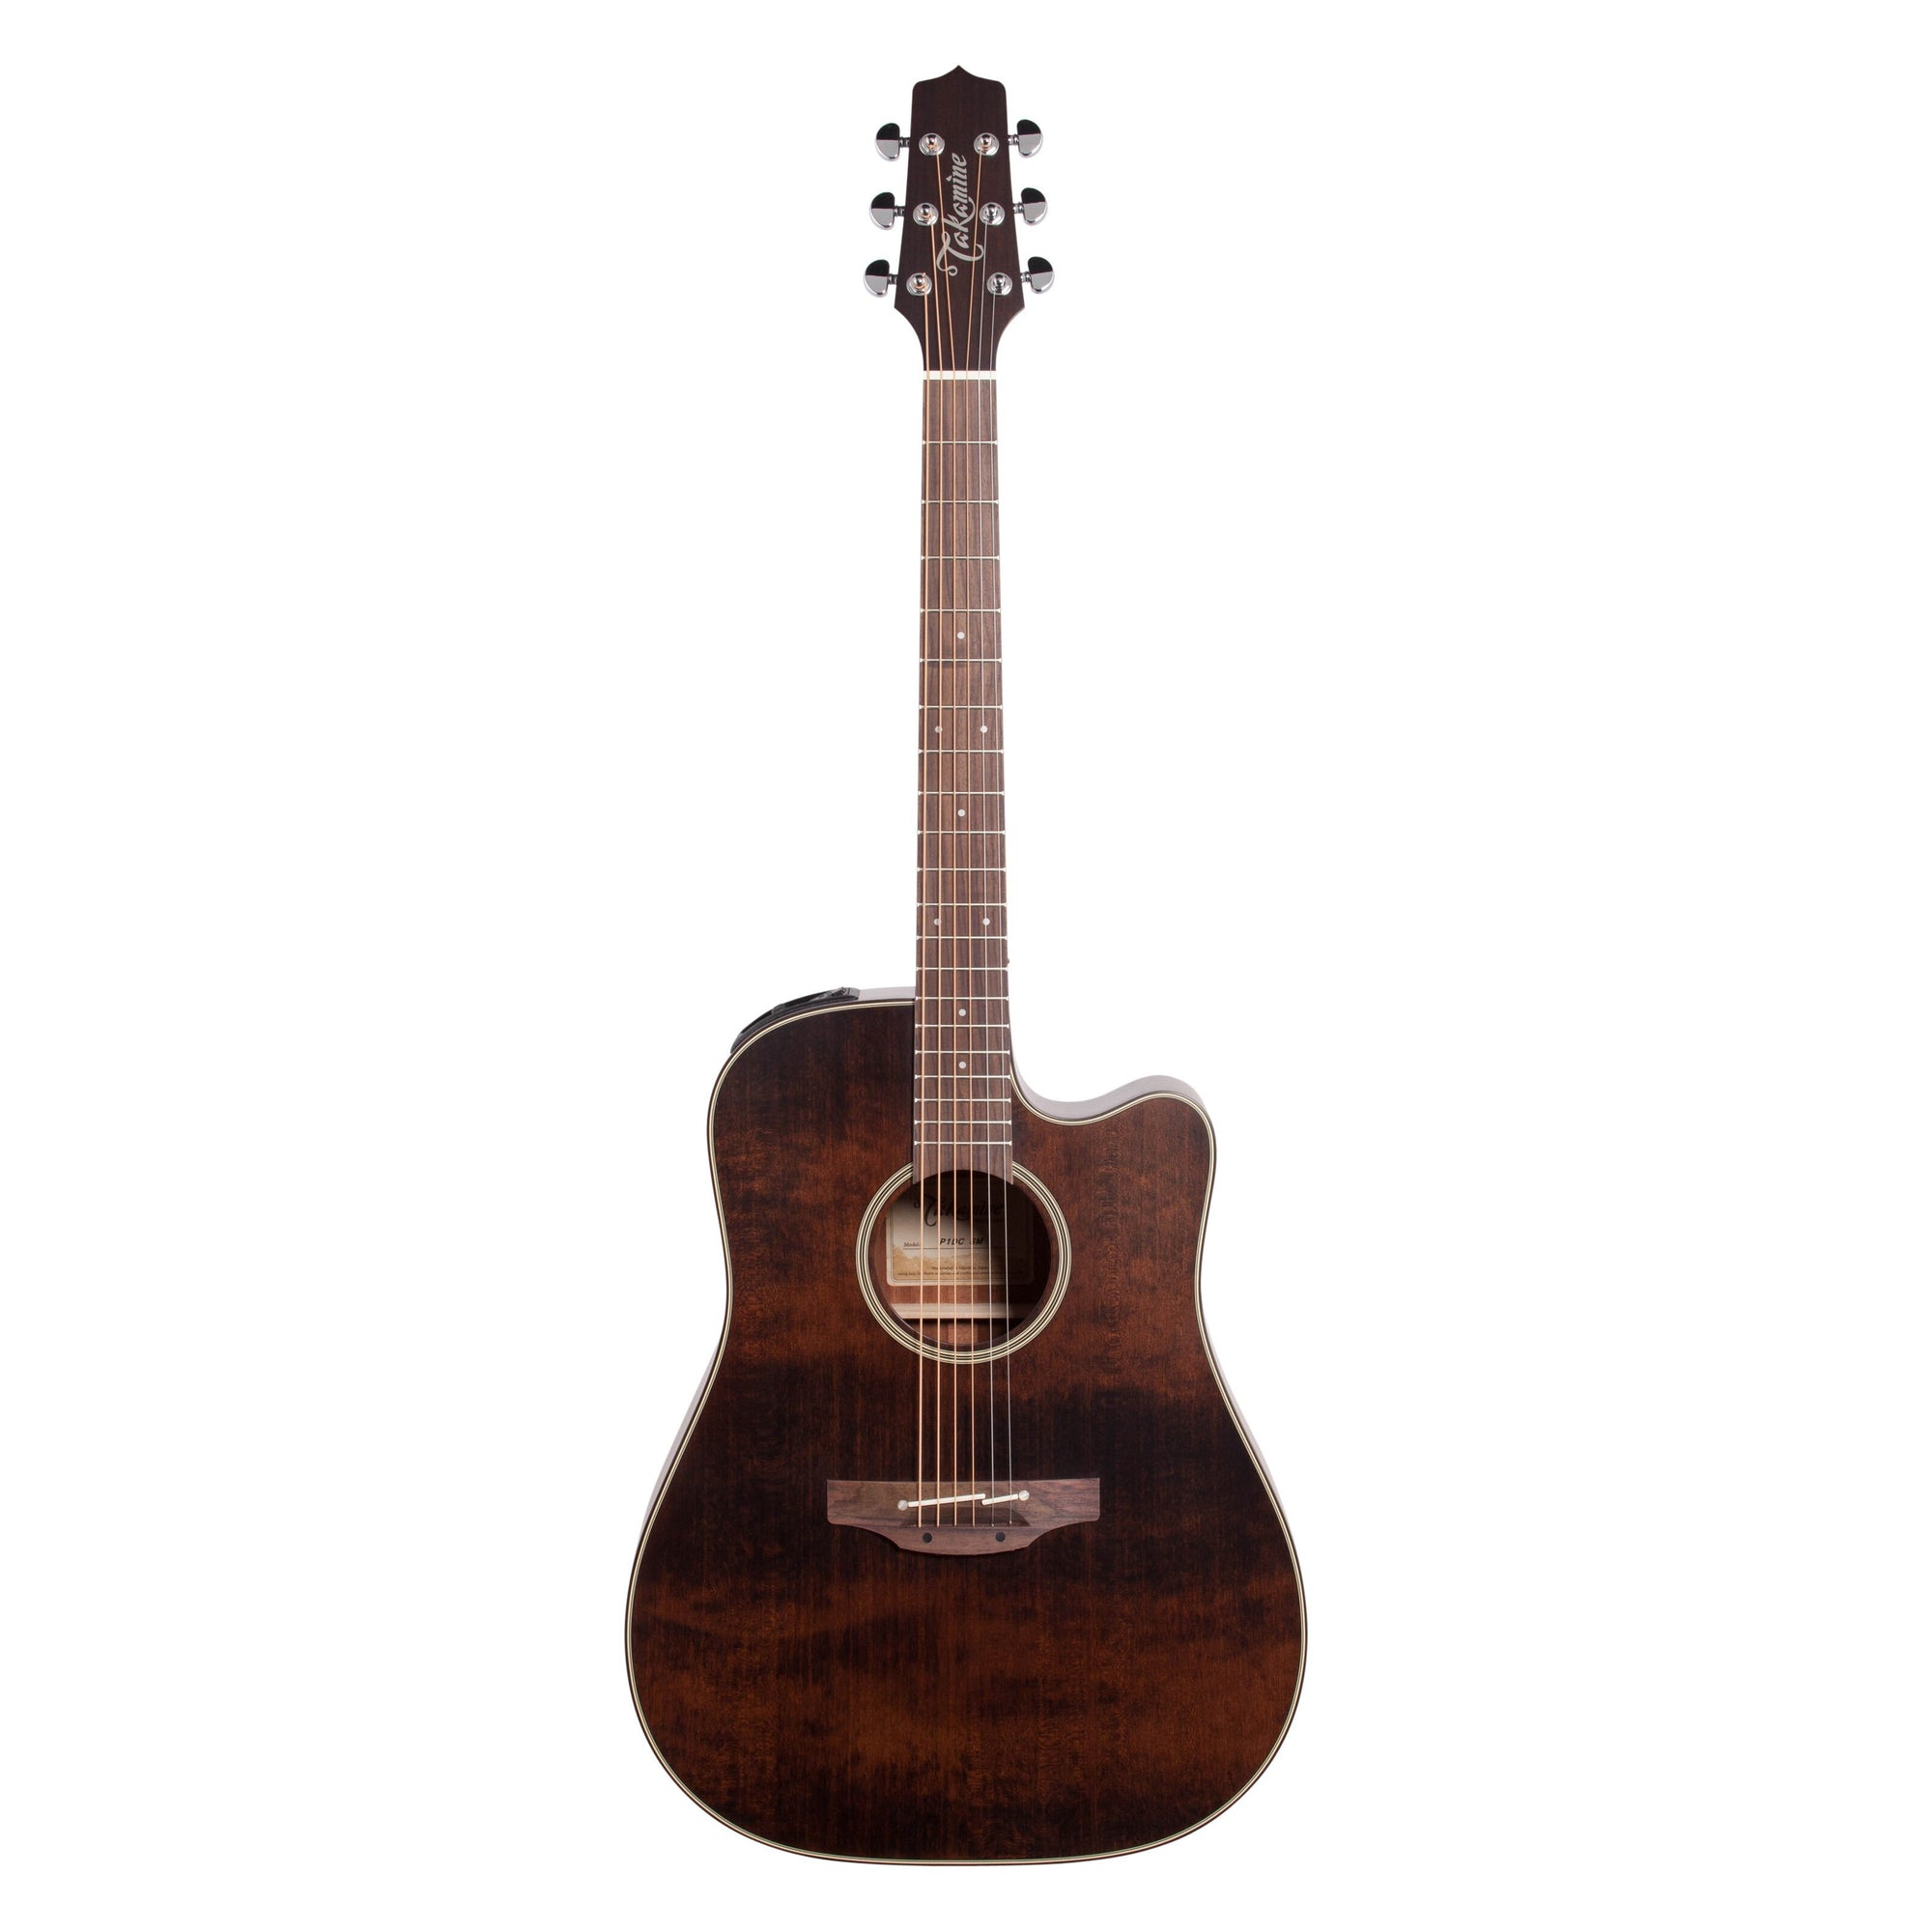 Takamine P1DC Dreadnought Acoustic-Electric Guitar (with Case), Satin Molasses